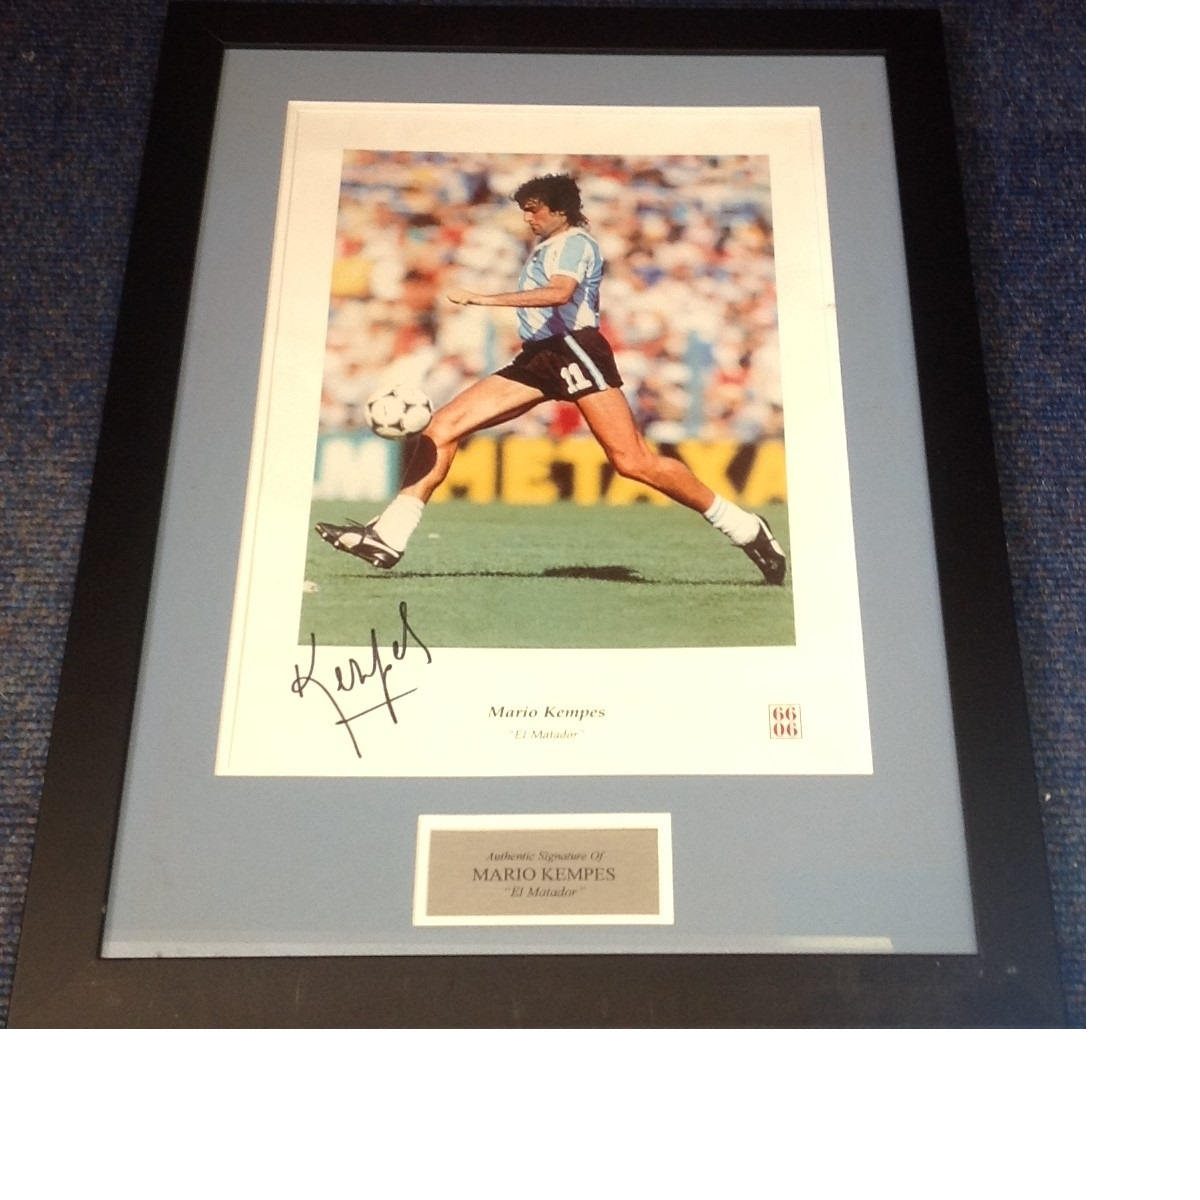 Lot 48 - Football Mario Kempes 27x18 approx mounted and framed signed colour photo. Mario Alberto Kempes